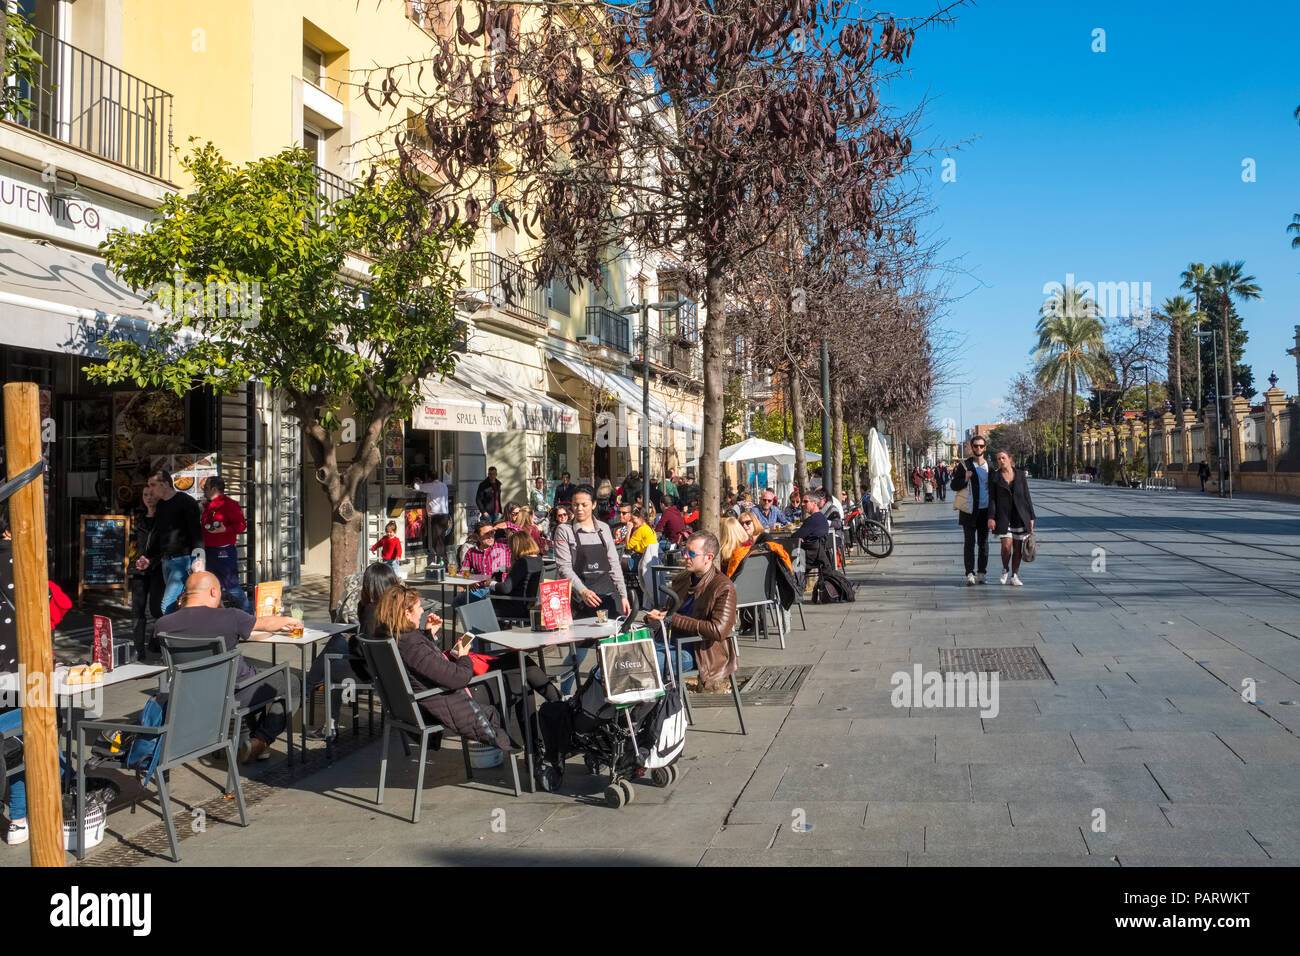 Seville pavement cafes with people sitting in the centre of Seville, Spain - Stock Image